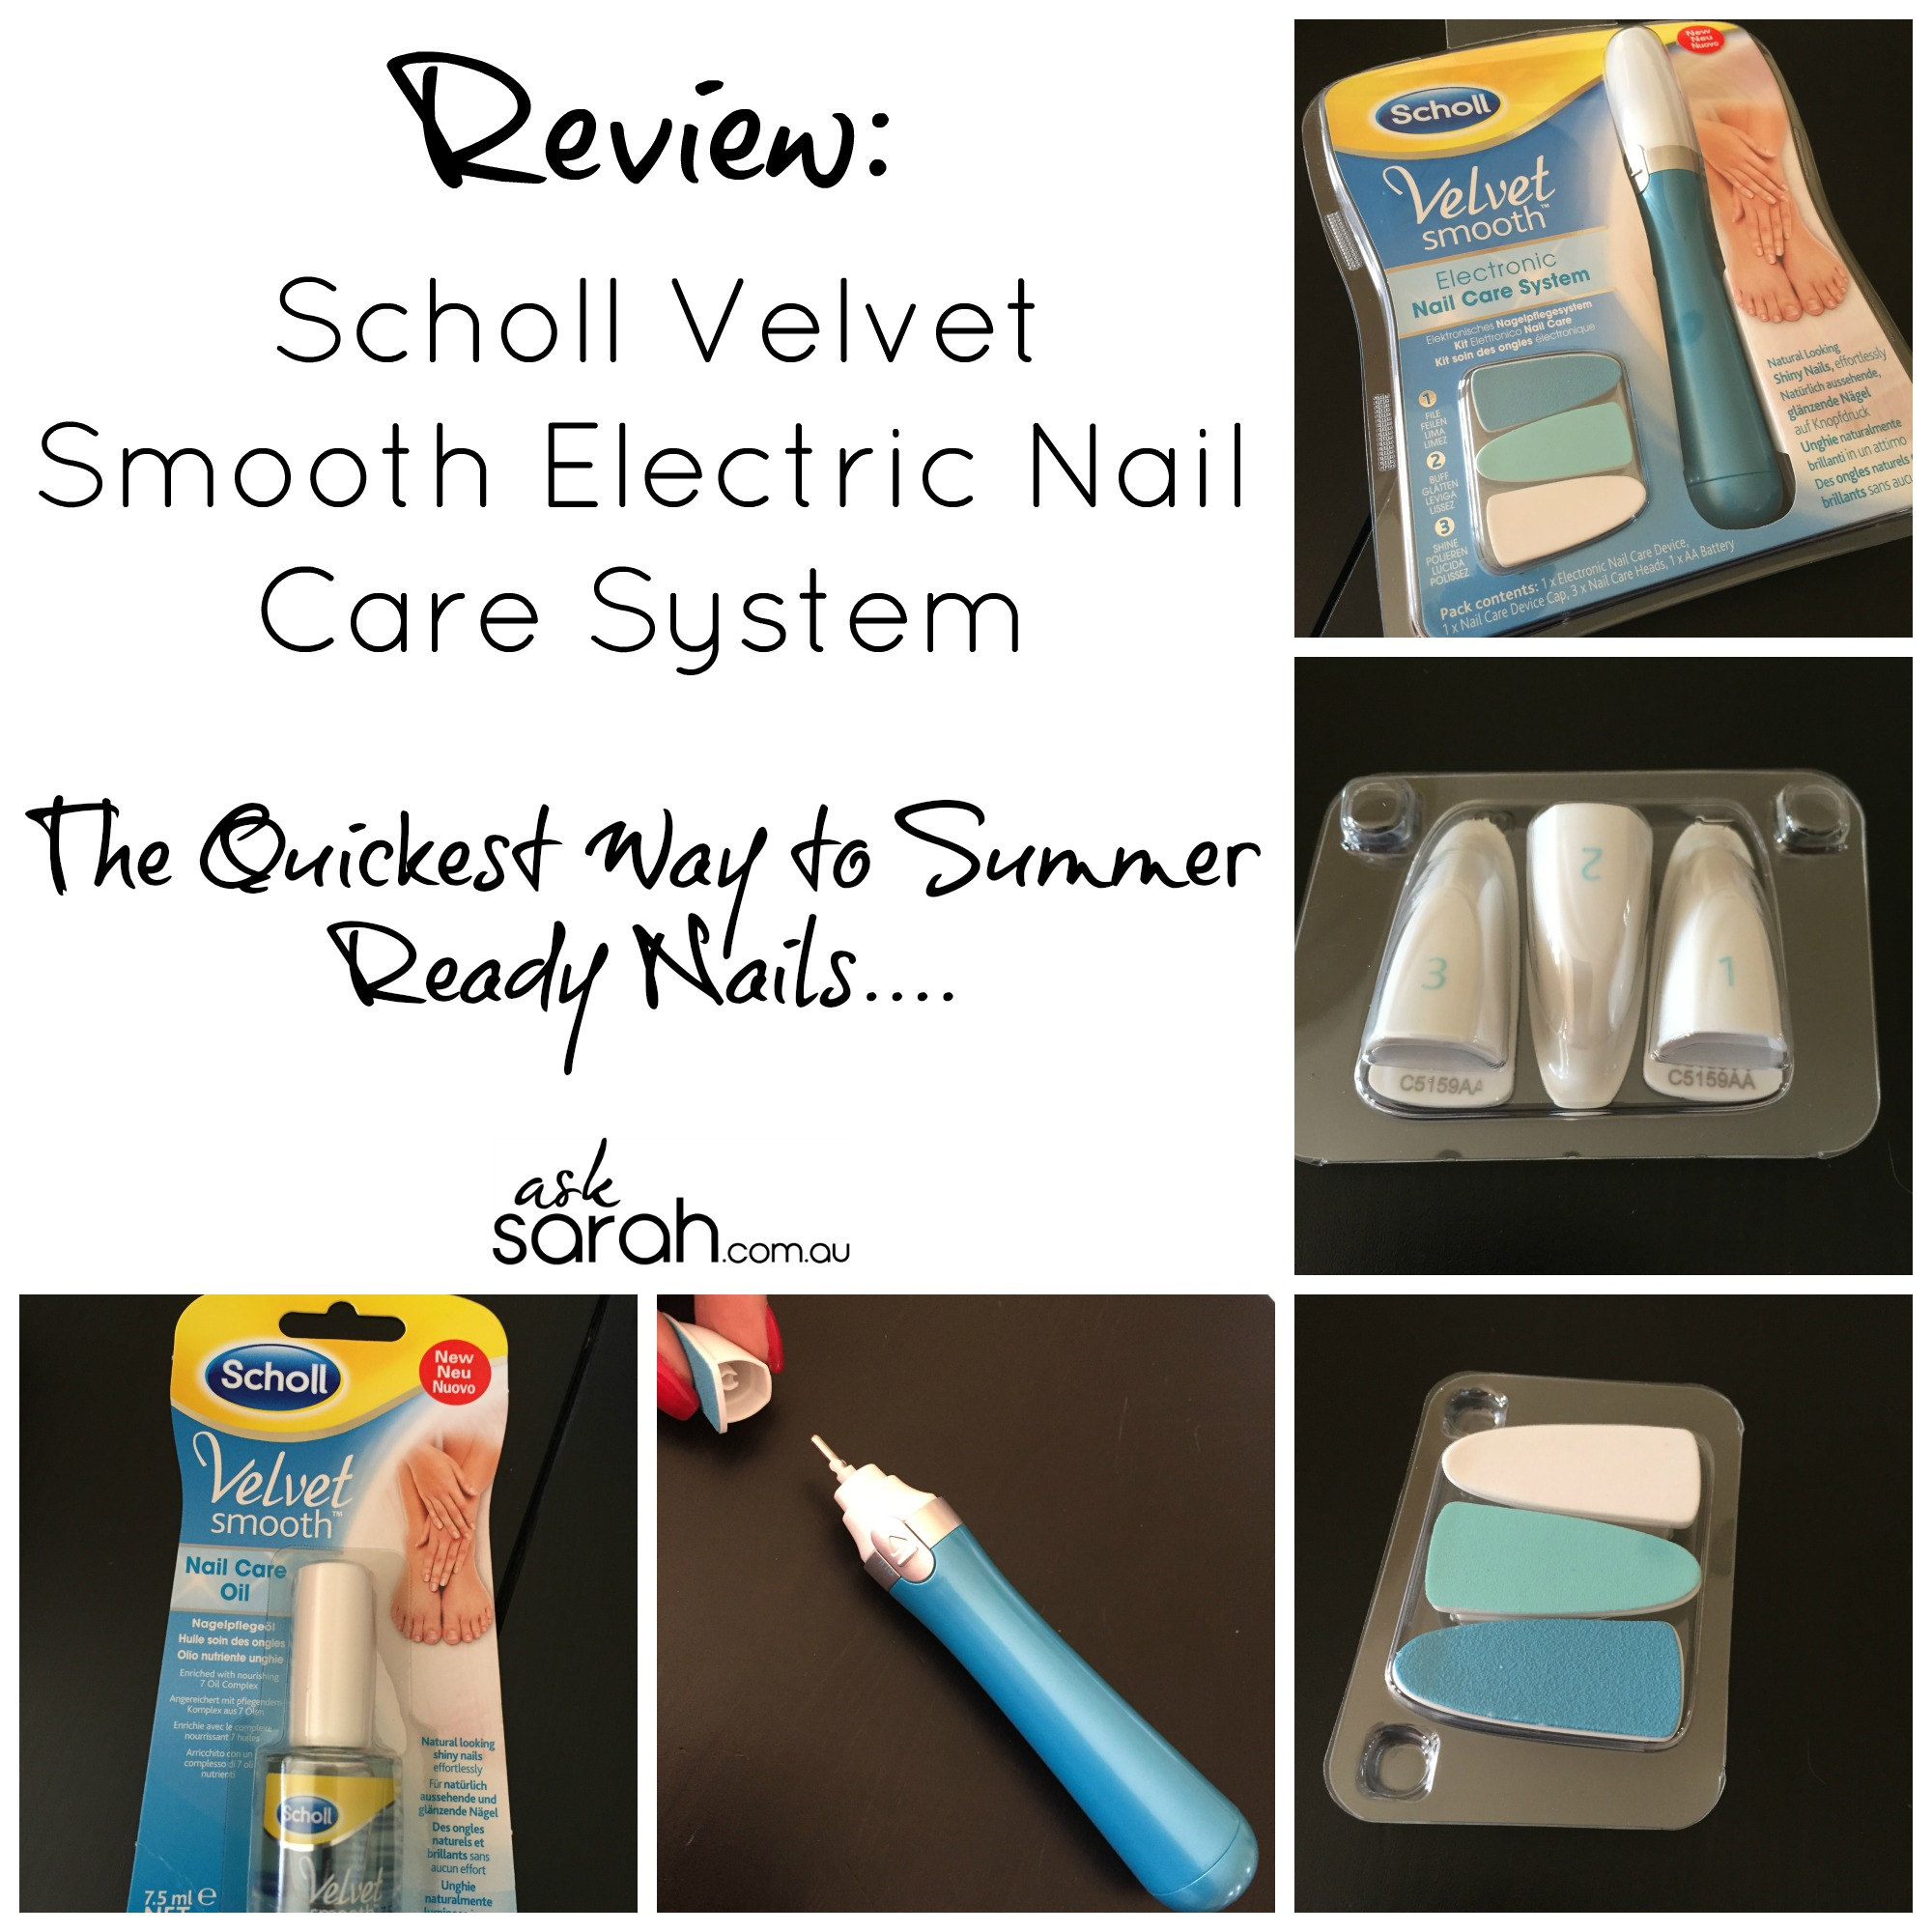 Review: Scholl Velvet Smooth Electric Nail Care System {The Quickest Way to Get Summer Ready Nails}